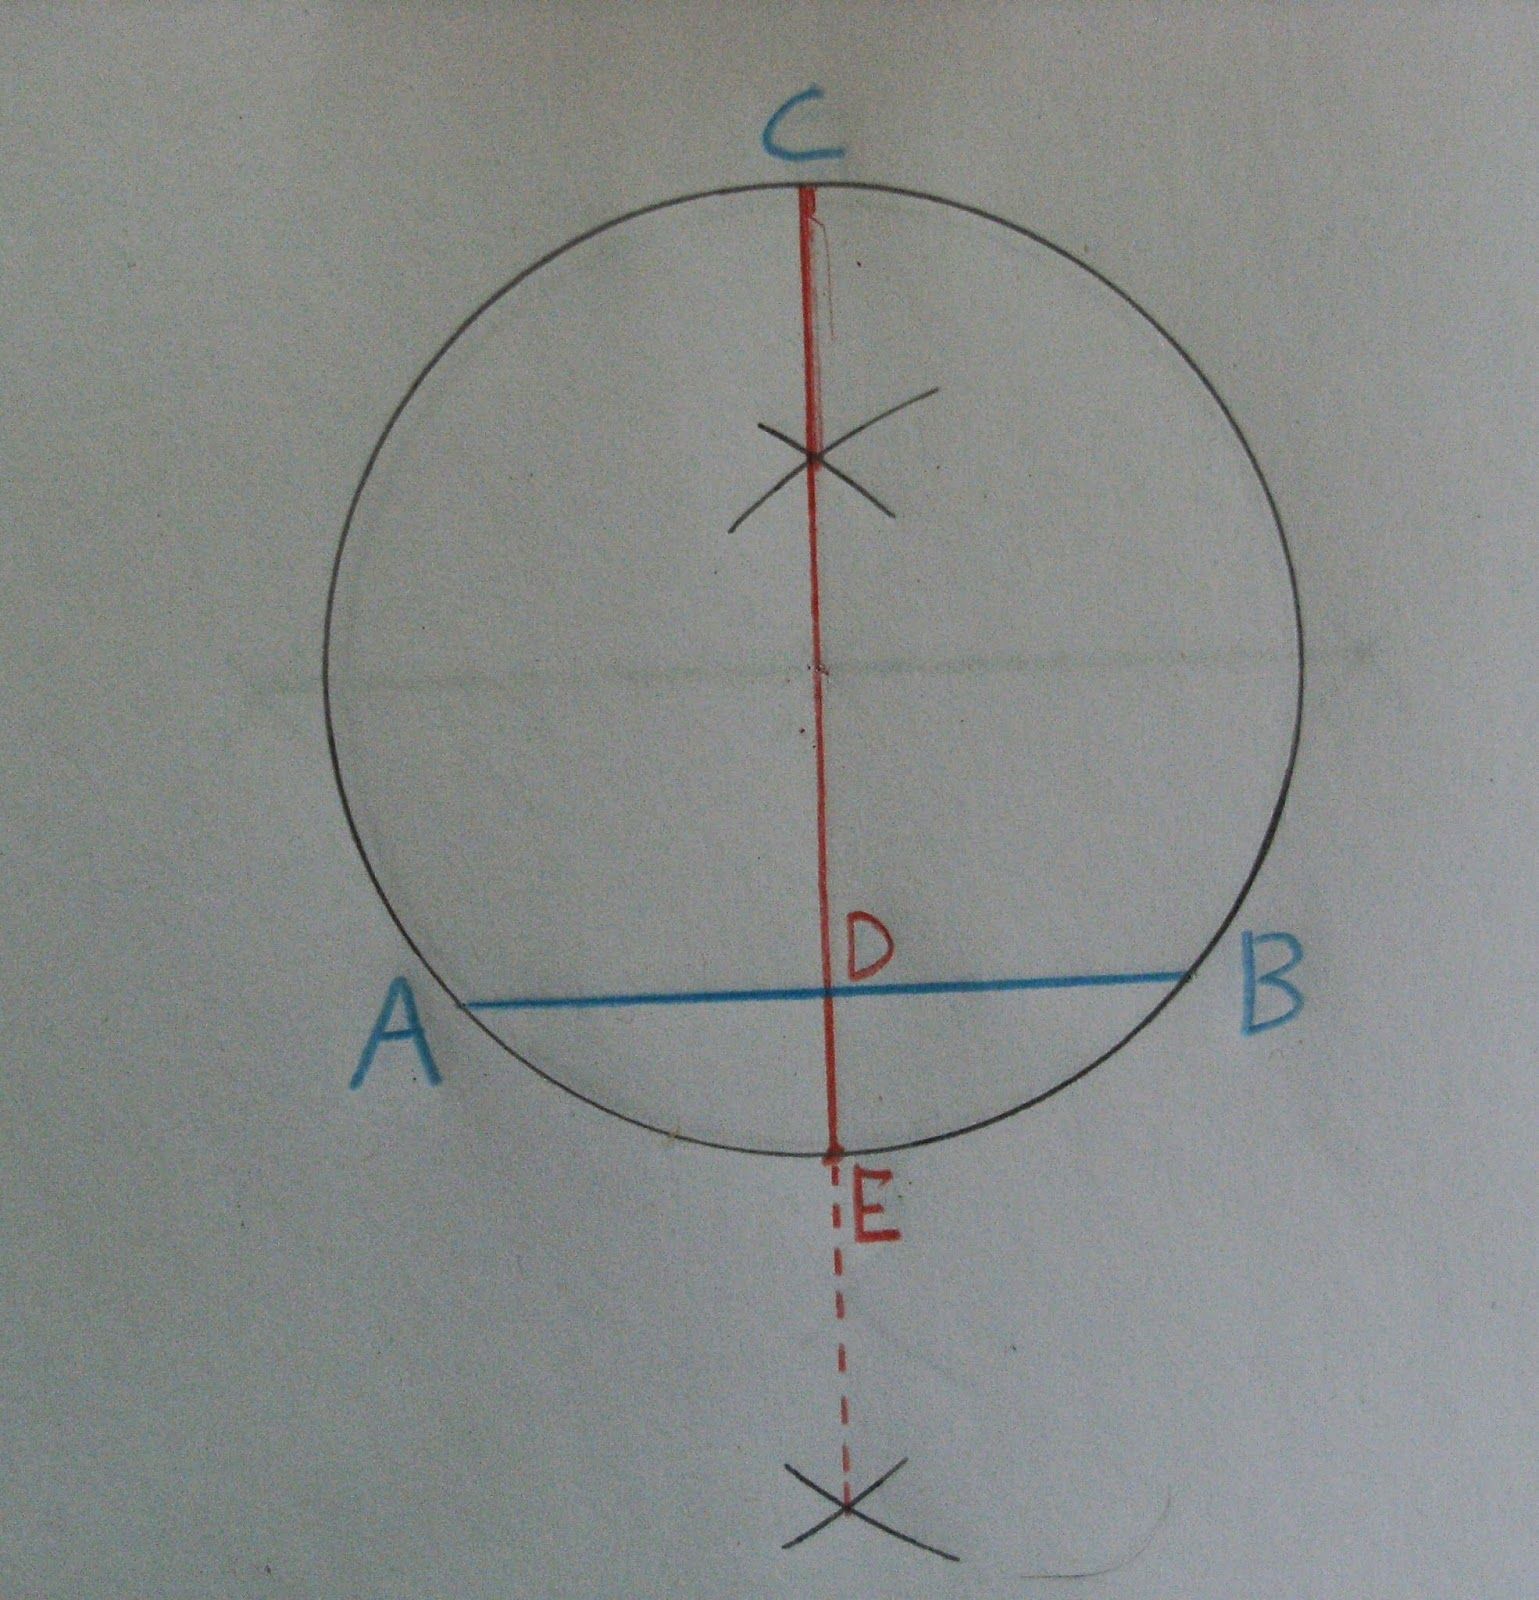 how to draw a circle in a matrix in c